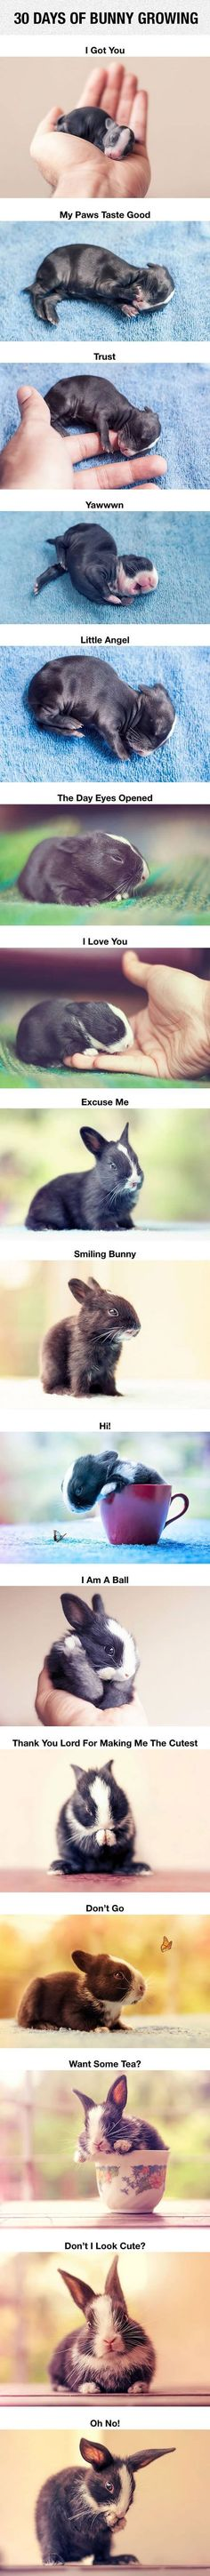 30 Days Of A Bunny Growing cute animals rabbit adorable animal pets baby animals bunny